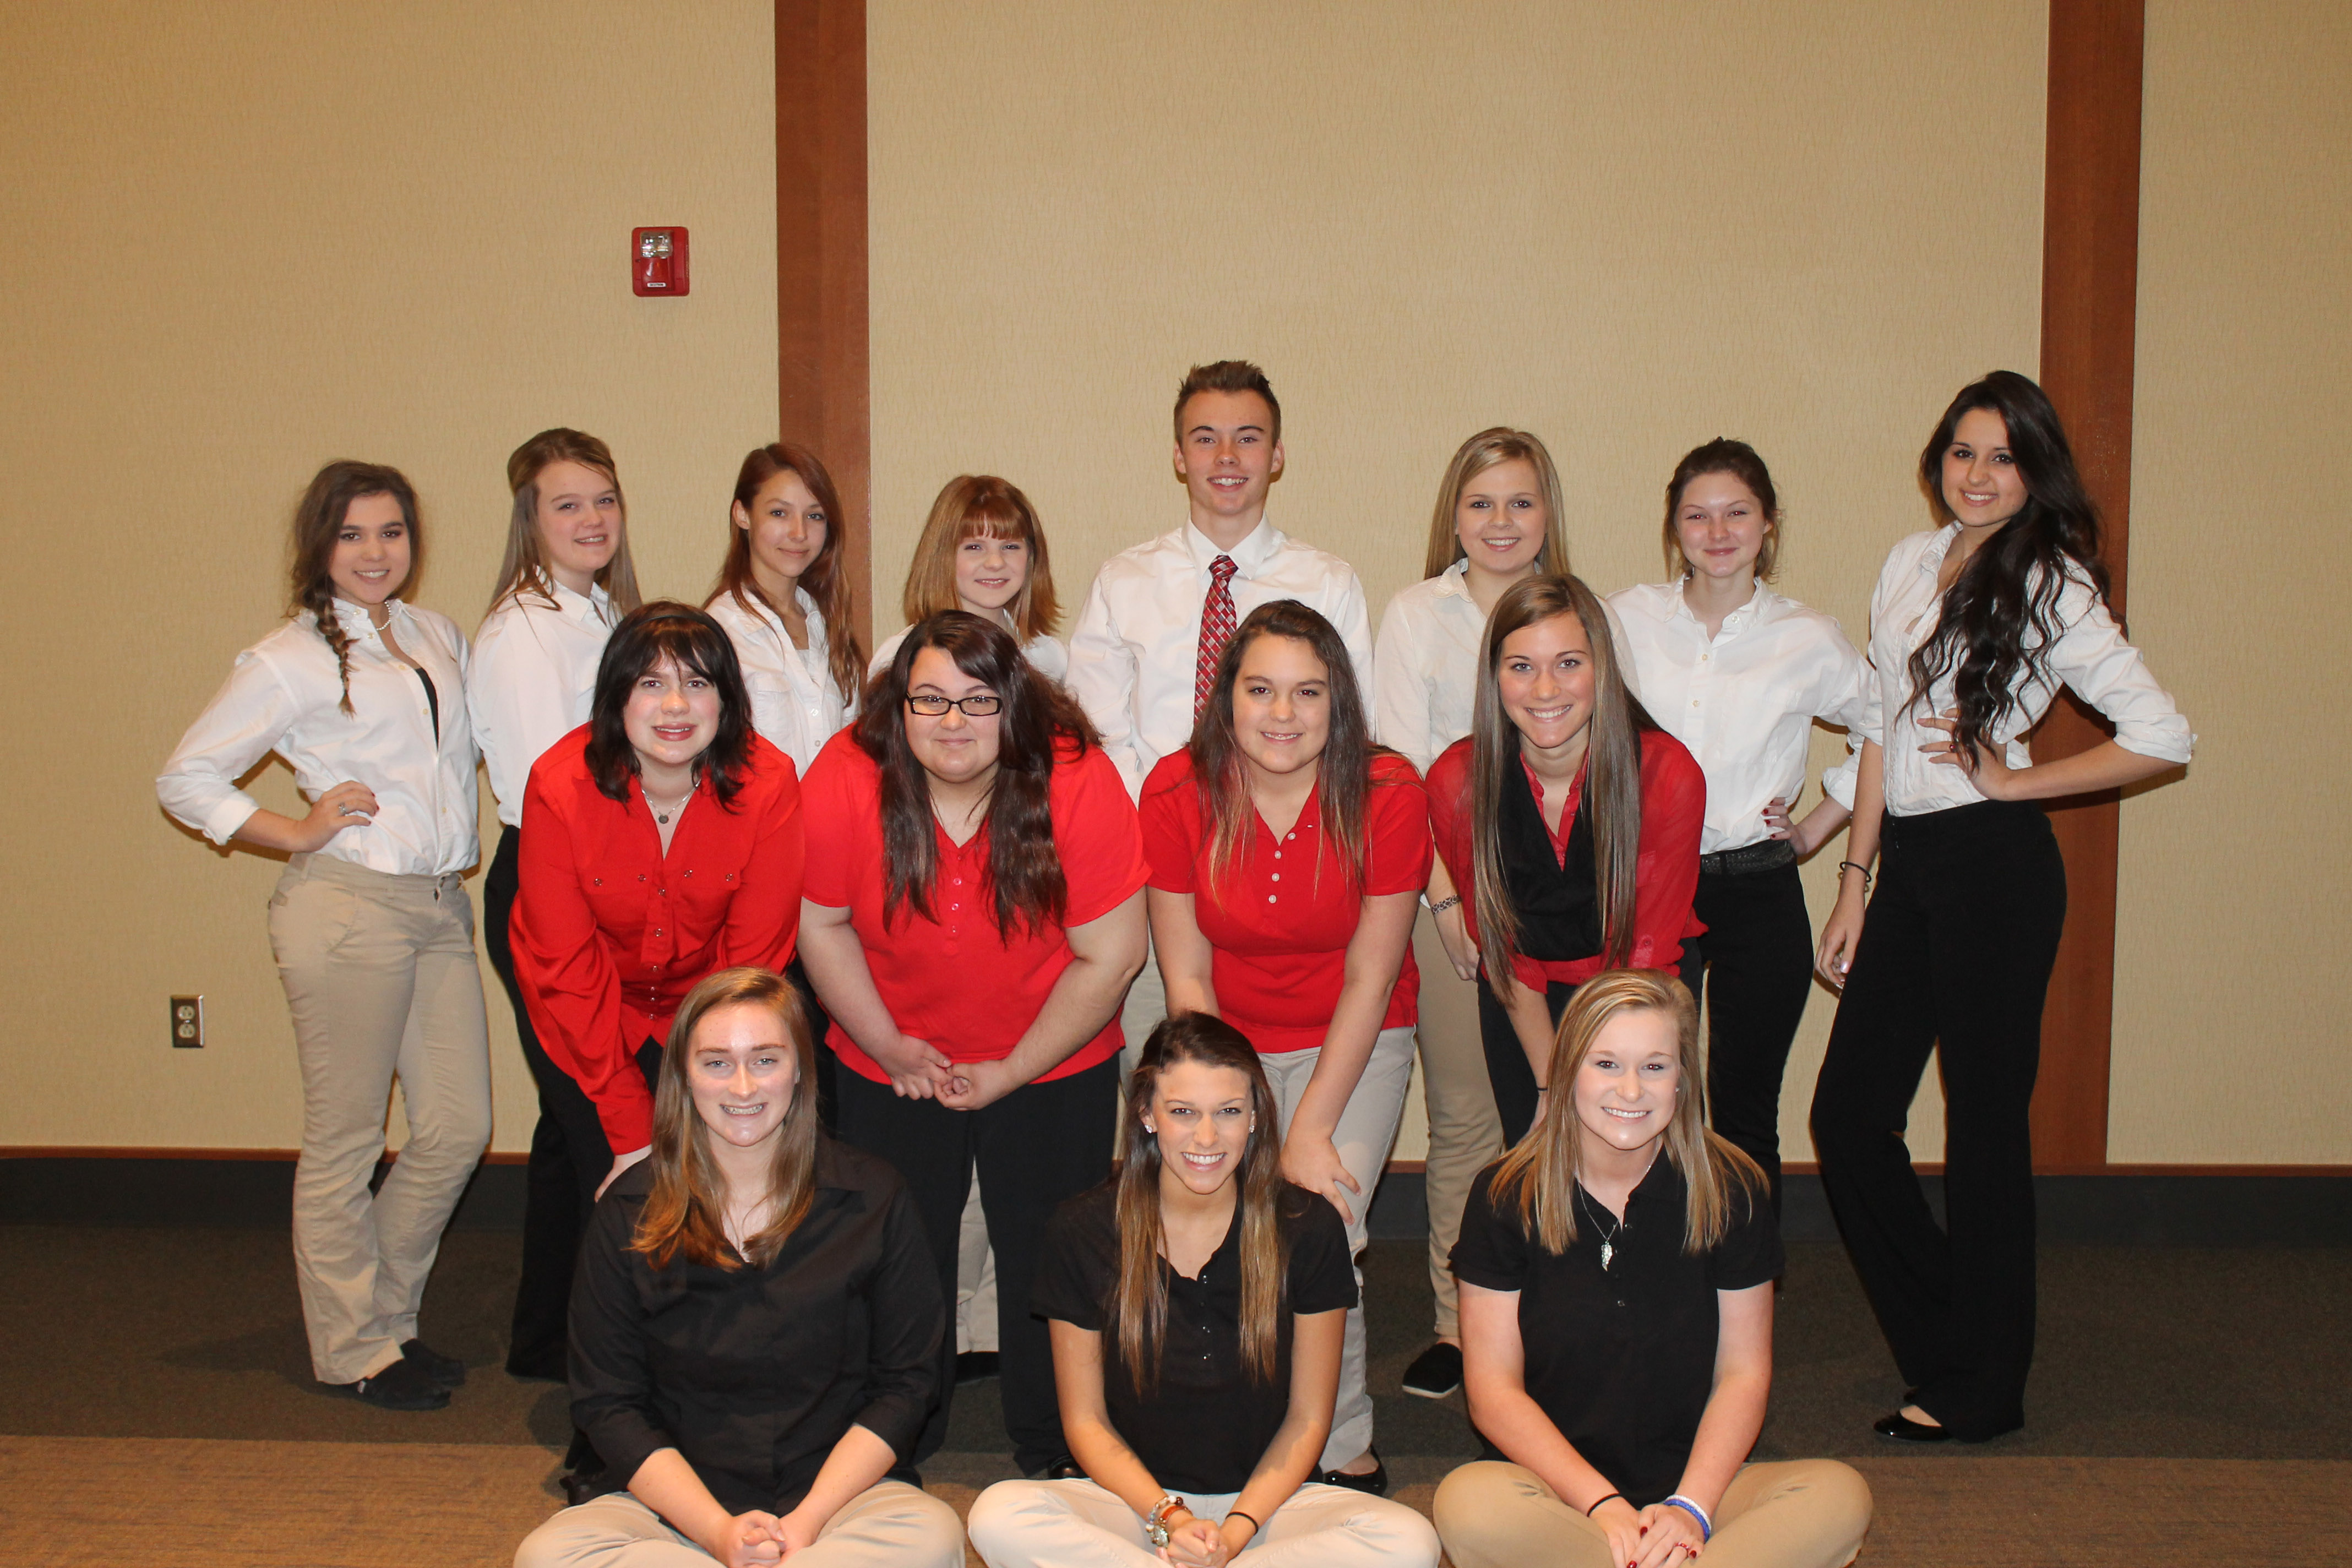 cabot-high-school-fccla-picture.jpg